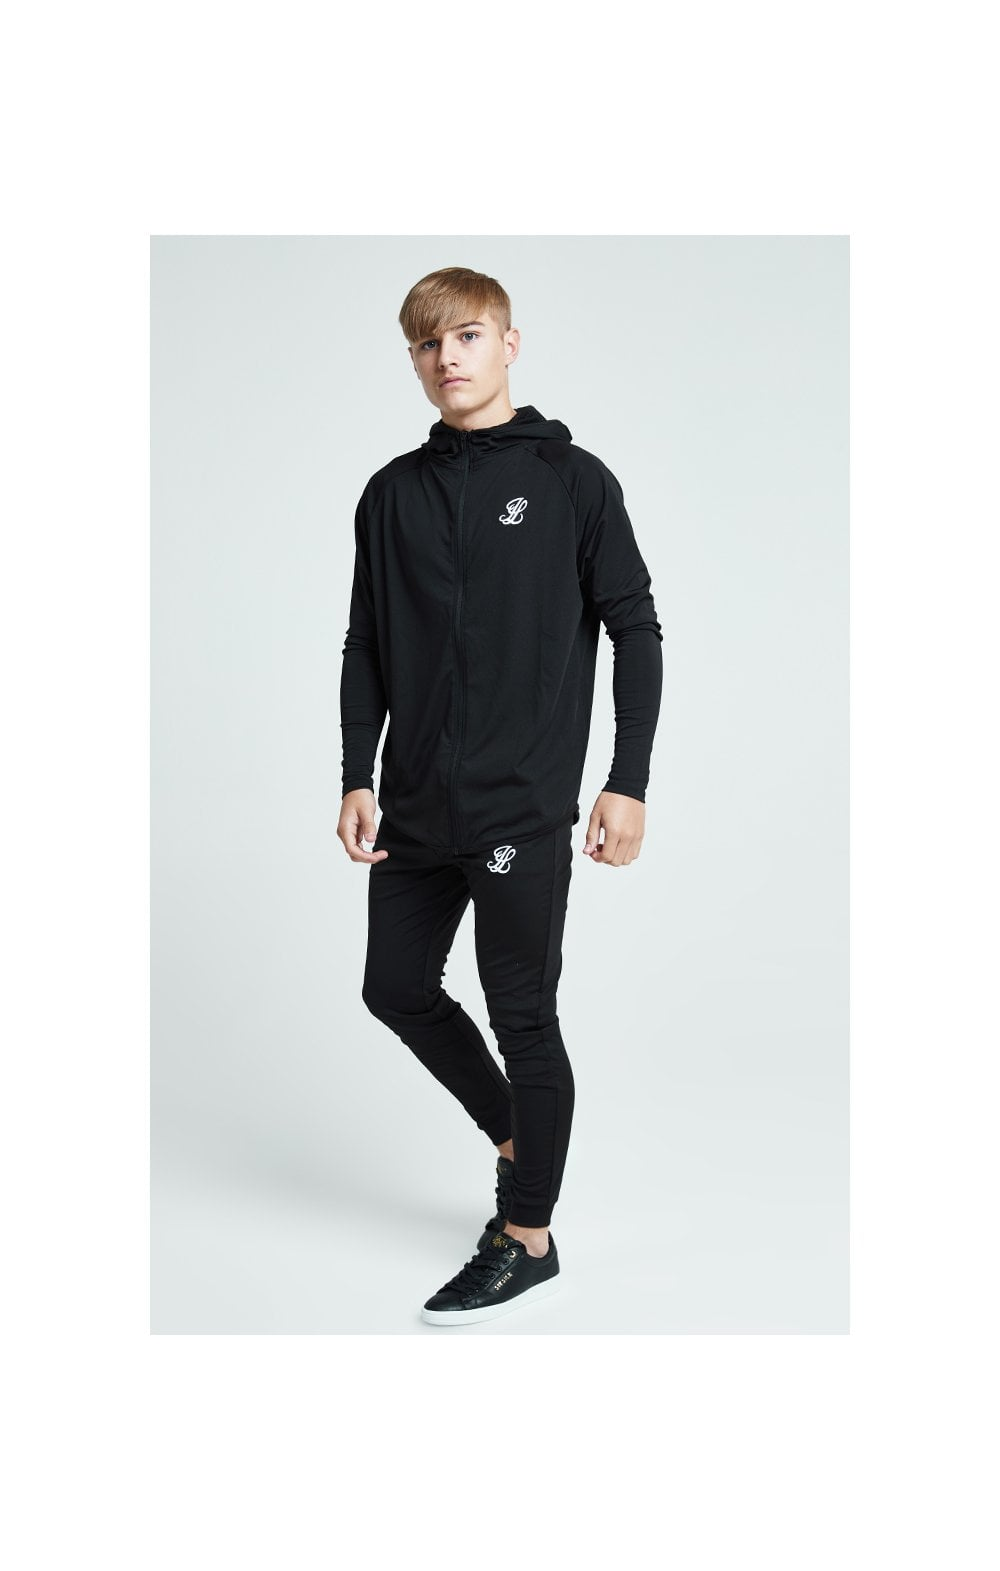 Illusive London Core Athlete Hoodie - Black (3)